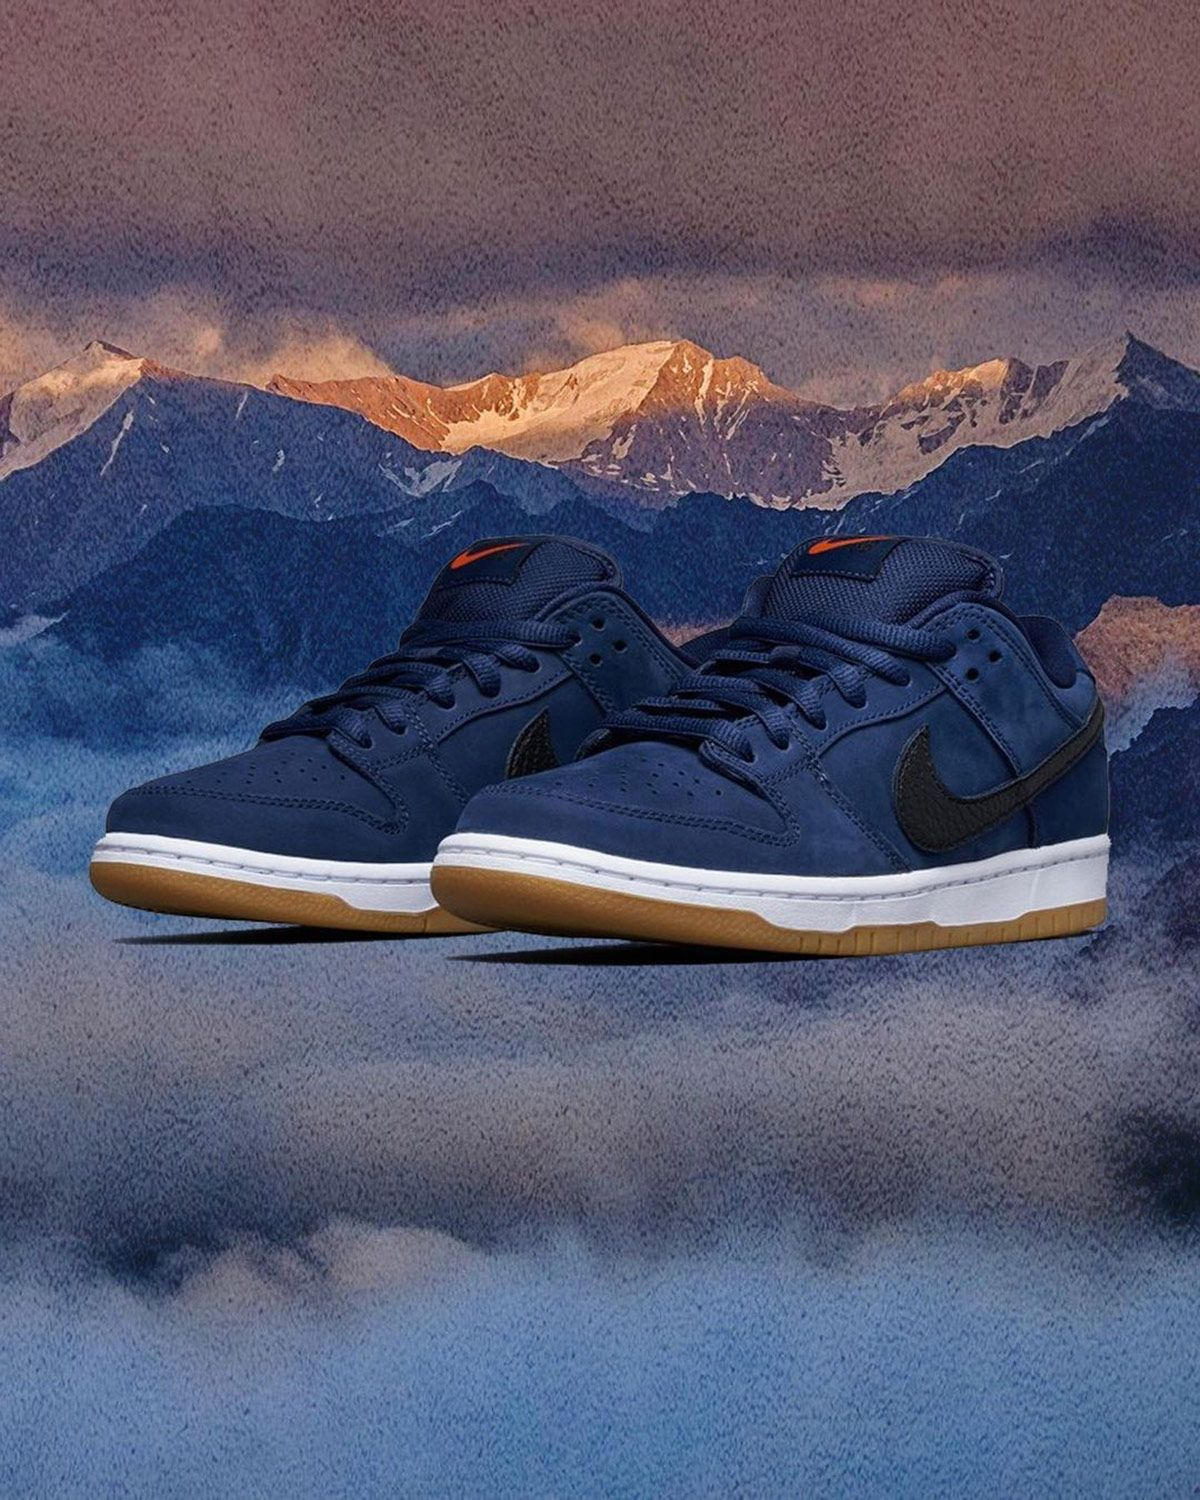 The Skate Shop-Exclusive SB Dunk Low Pro ISO Arrives in Navy 3